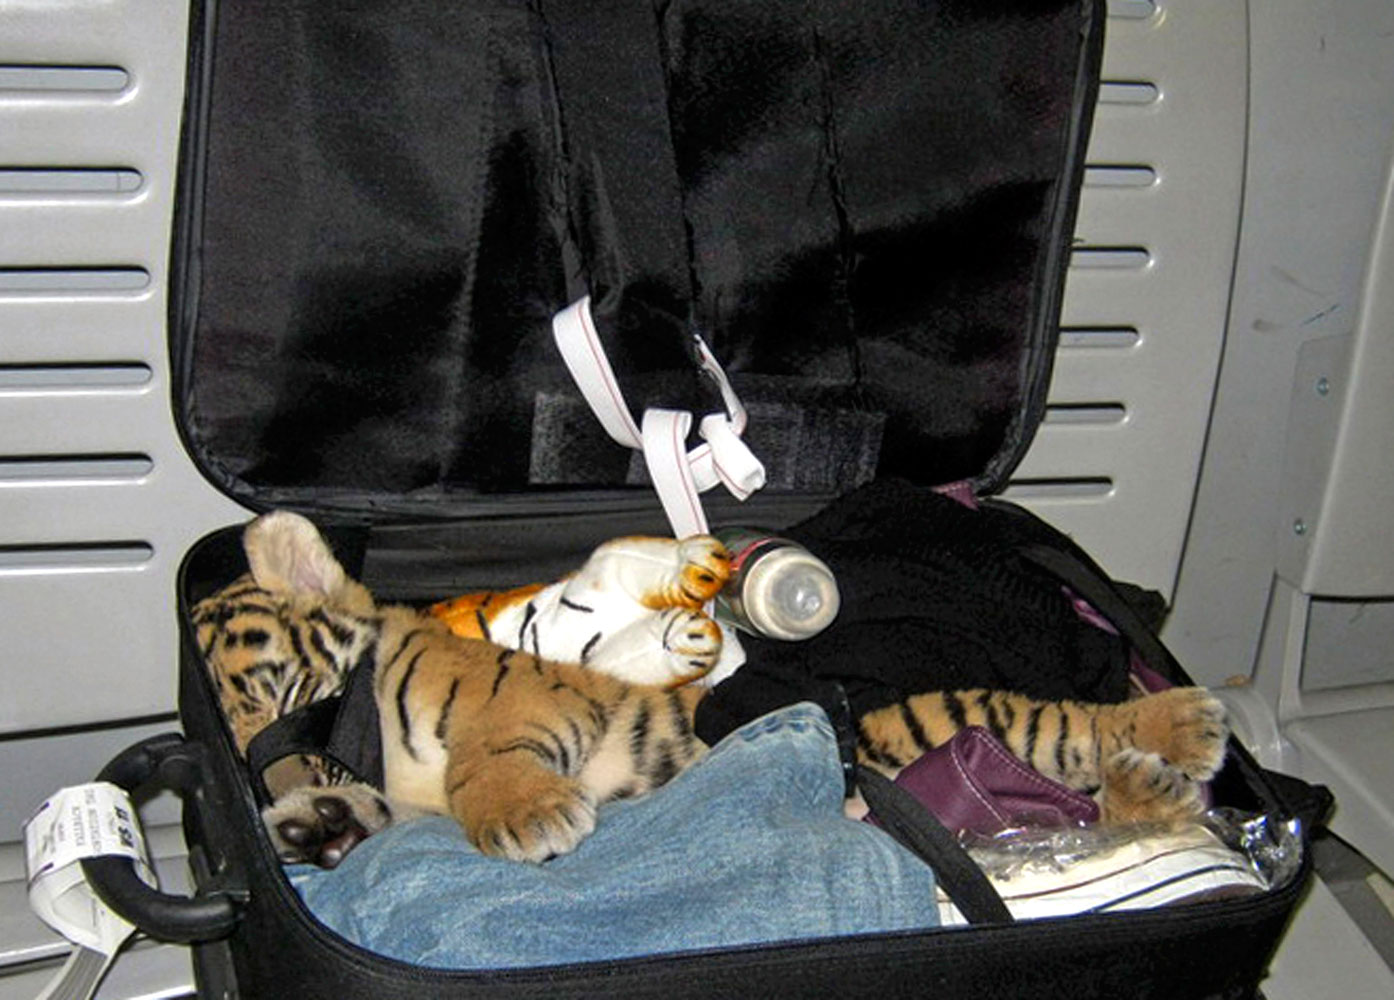 A baby tiger cub is found  in the suitcase of a woman flying from Bangkok to Iran, at Suvarnabhumi Airport, in Bangkok, Thailand. Authorities at the airport found the baby tiger cub that had been drugged and hidden among stuffed toy tigers in the suitcase. Photo release Aug. 22, 2010.